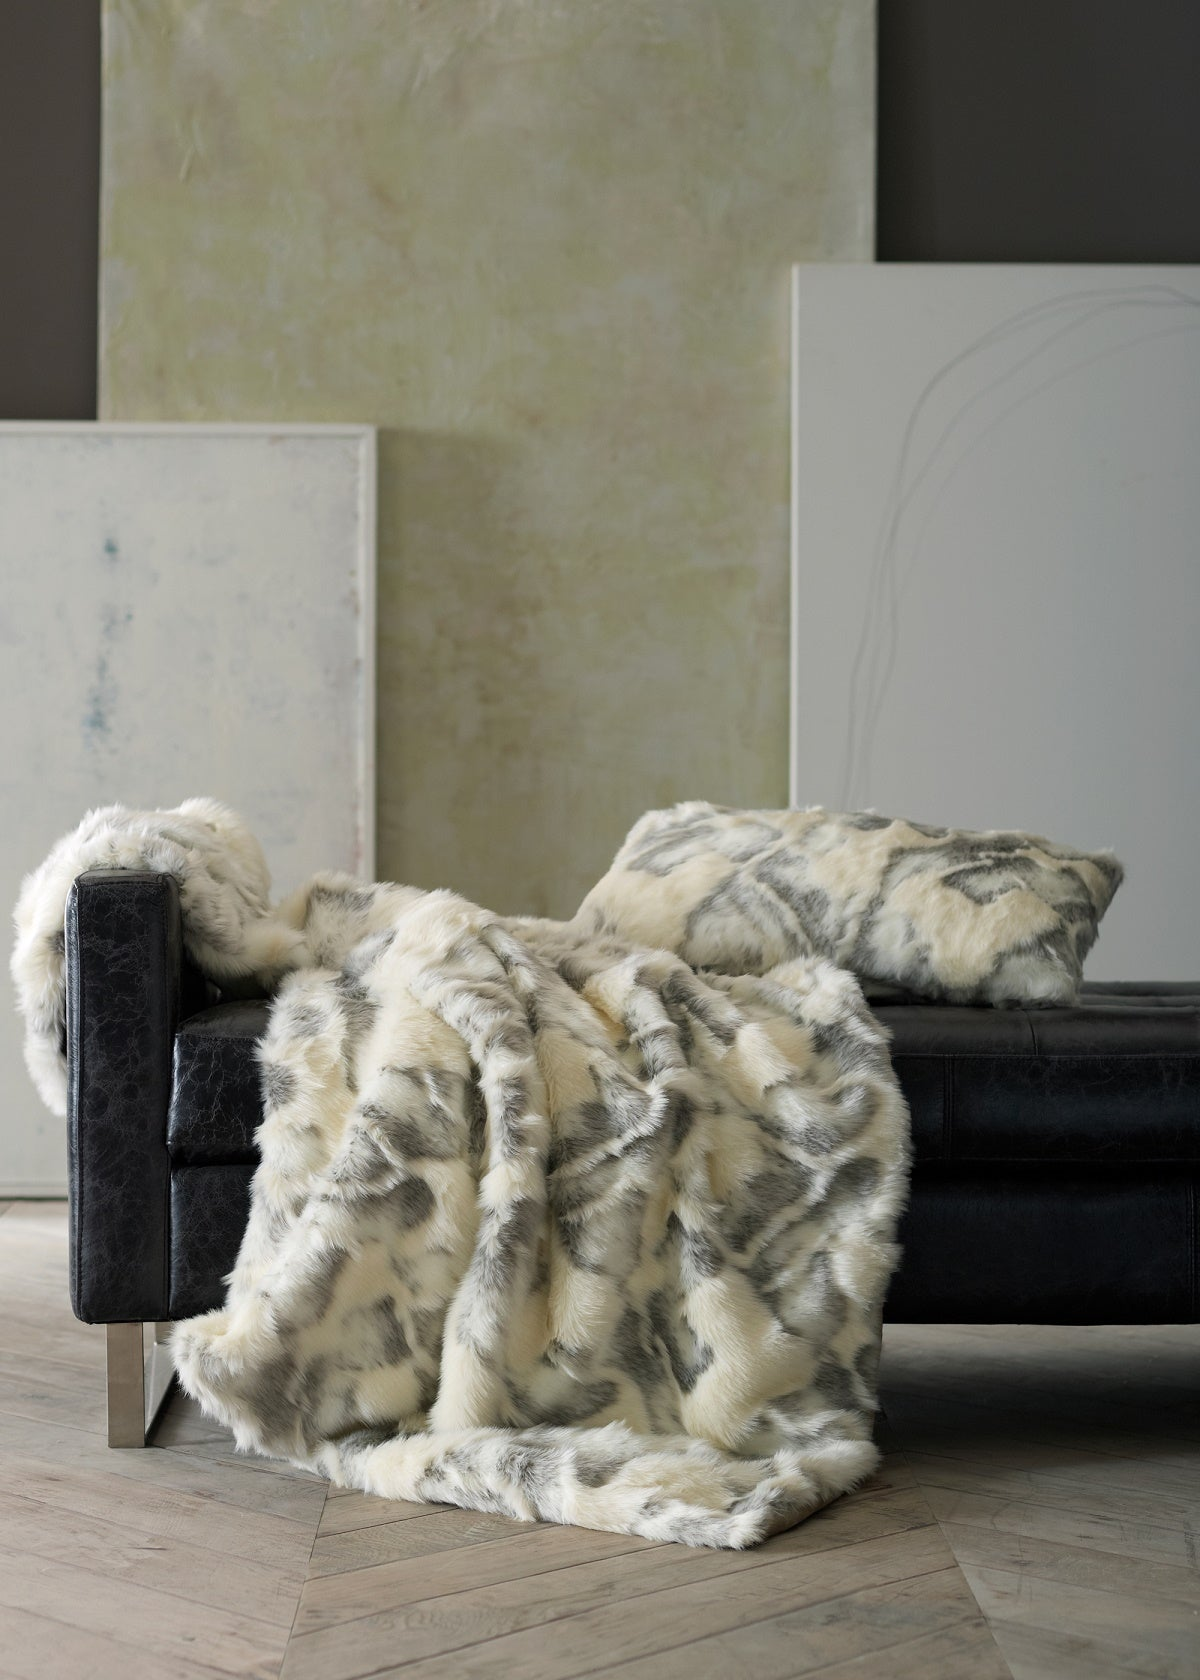 Faux fur in white and gray draped over black leather seating